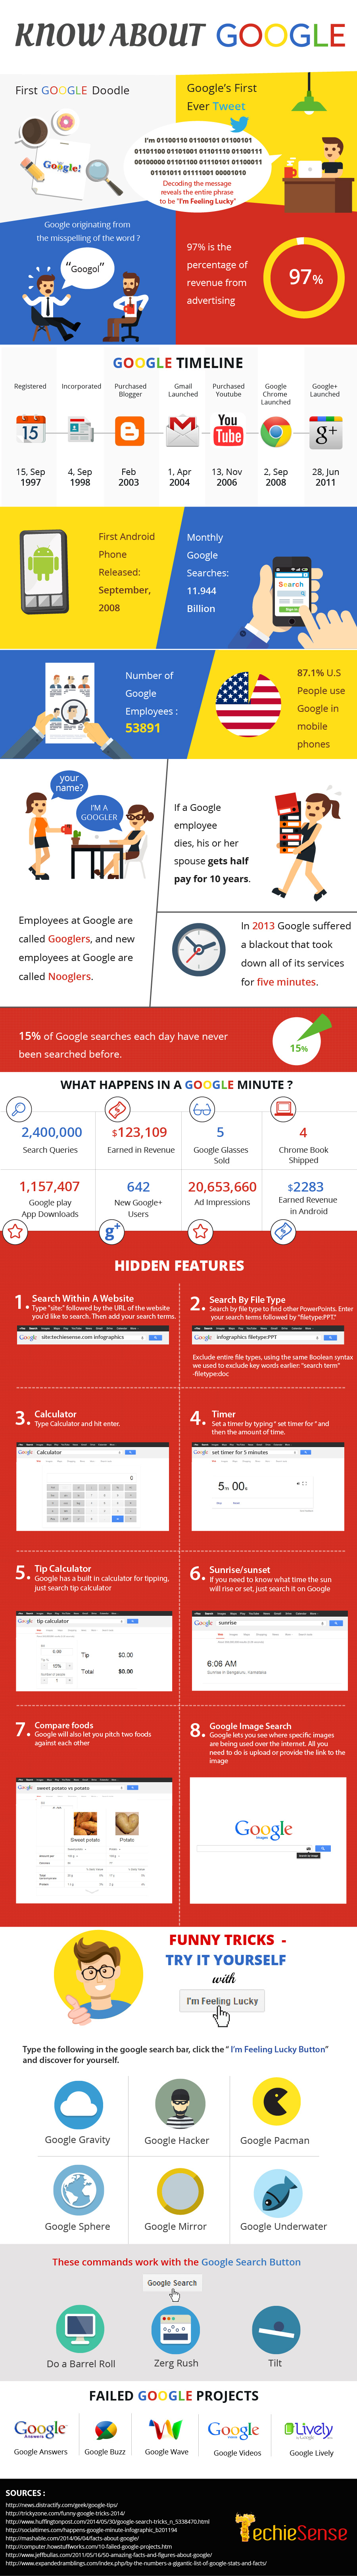 Know About Google - #infographic